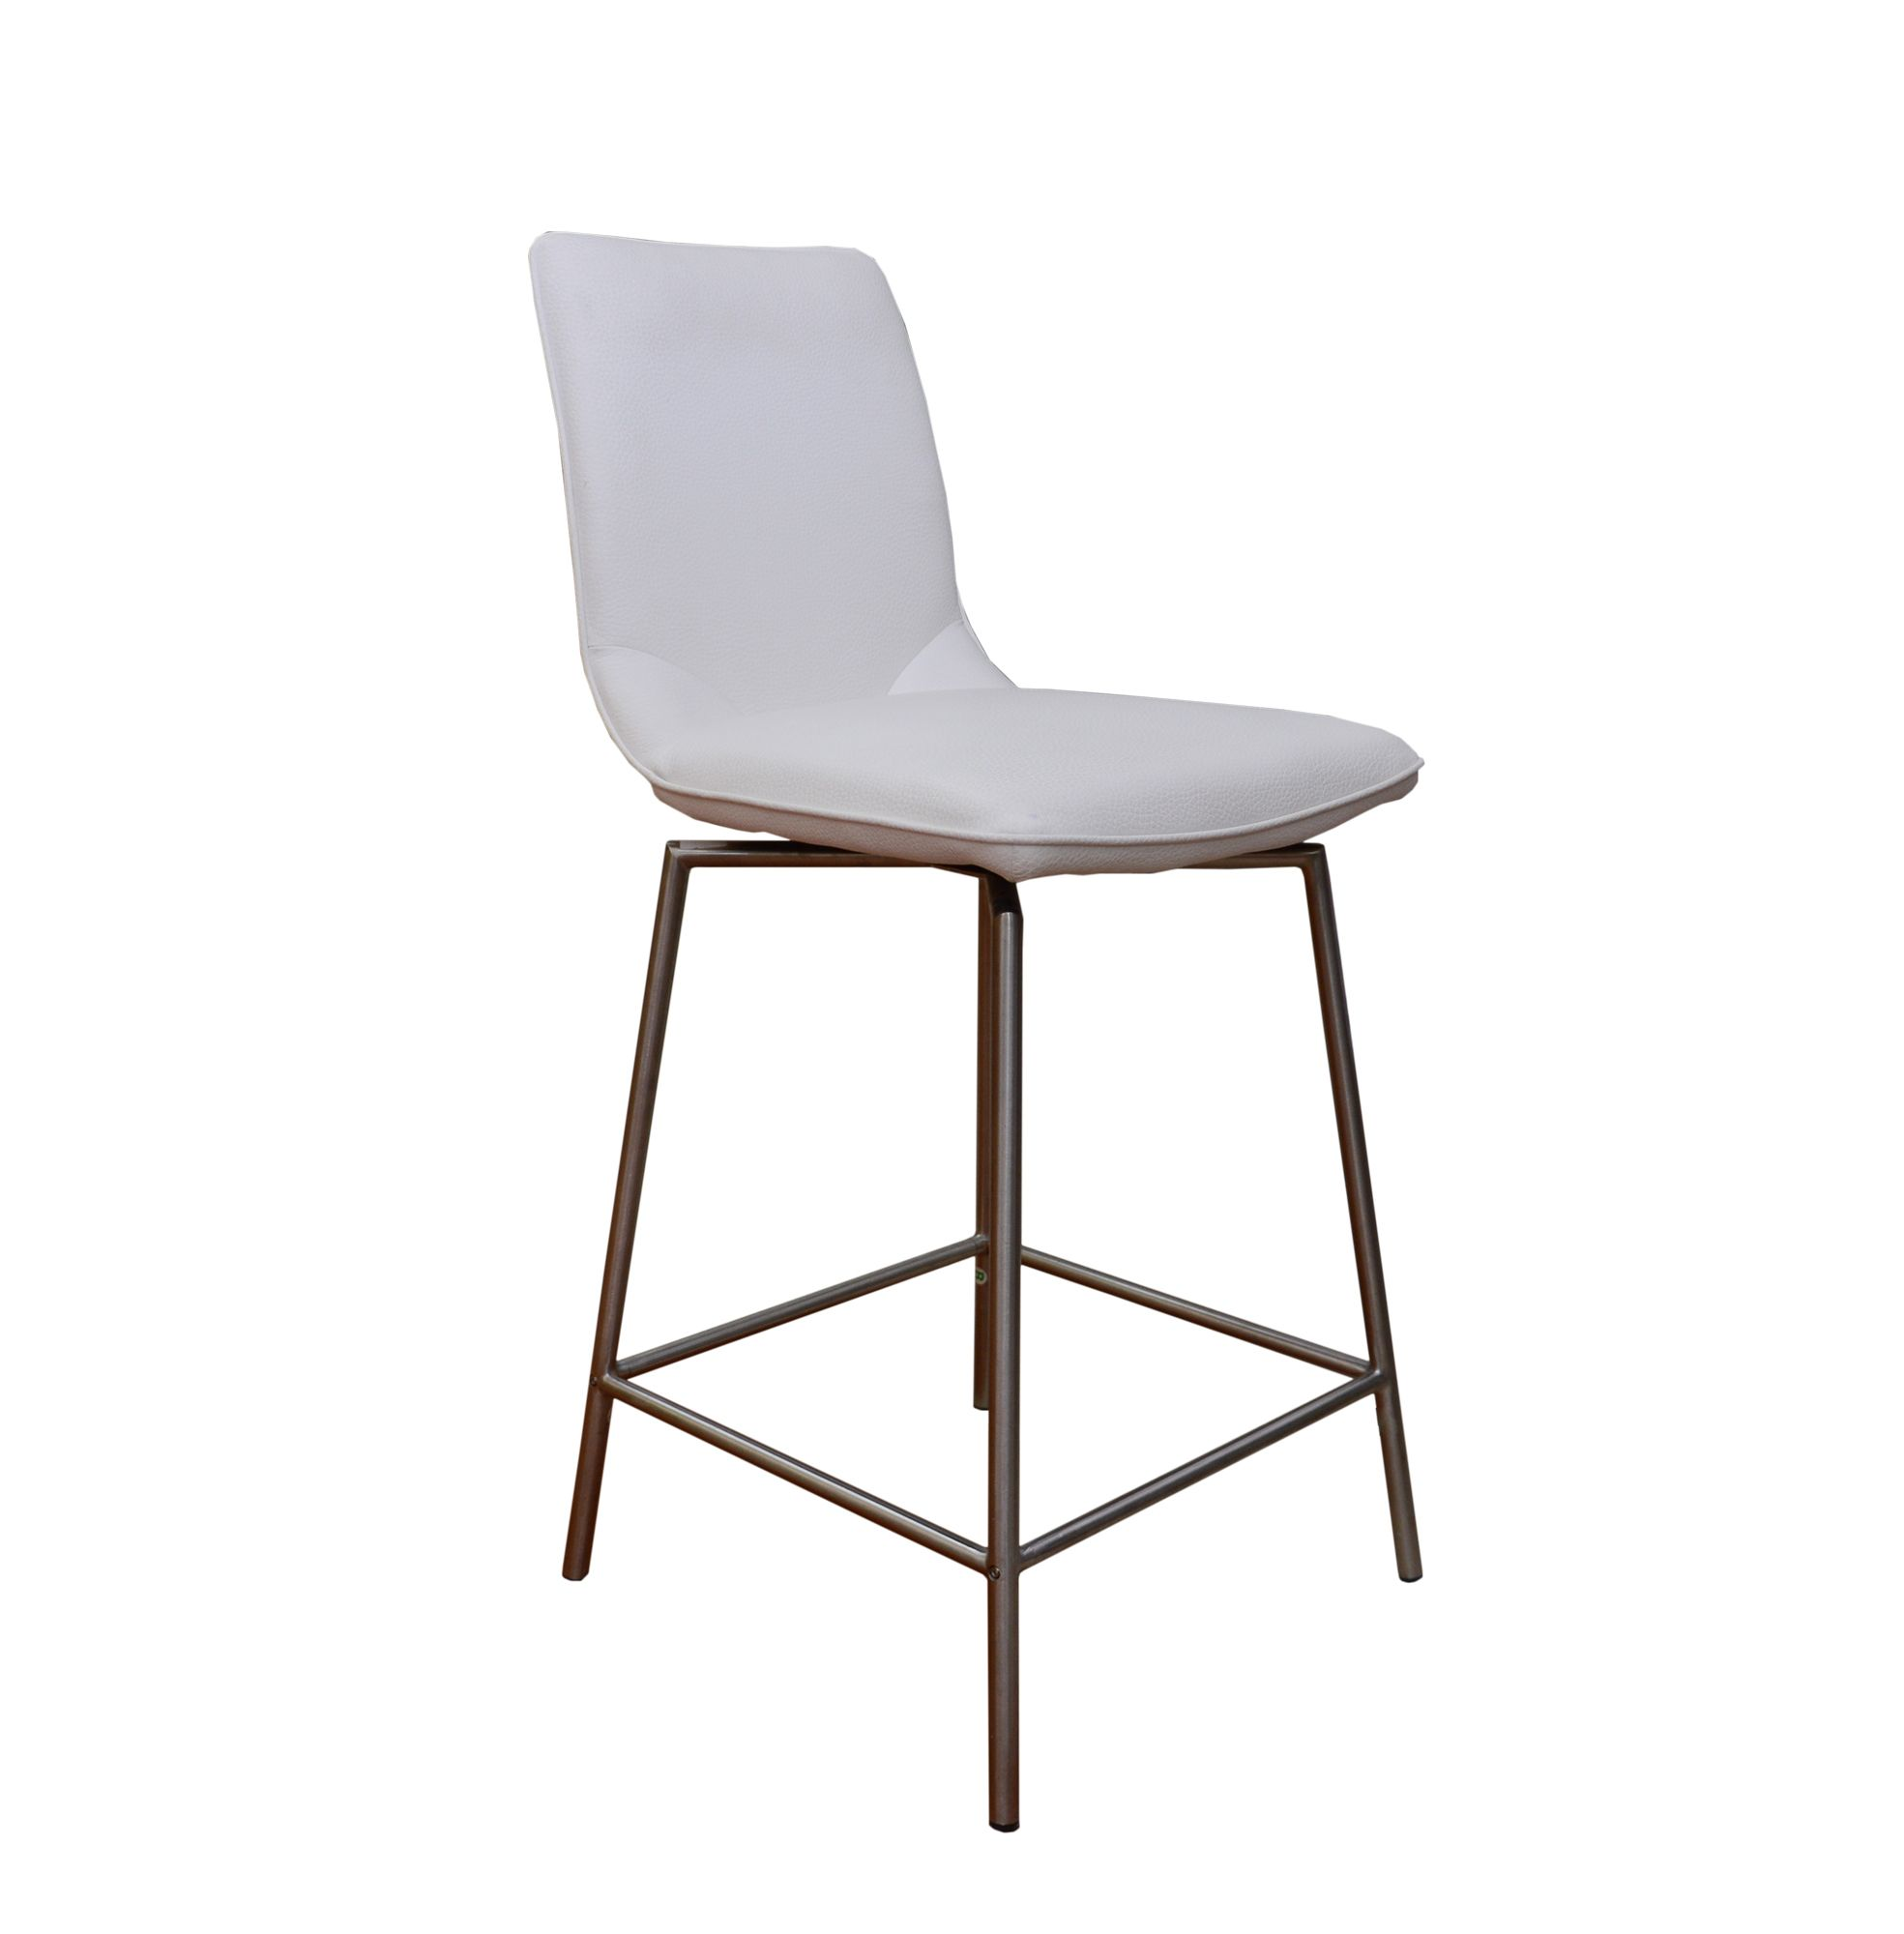 Swivel Bar Chairs Davy Tatra Swivel Bar Stool Faux Leather White